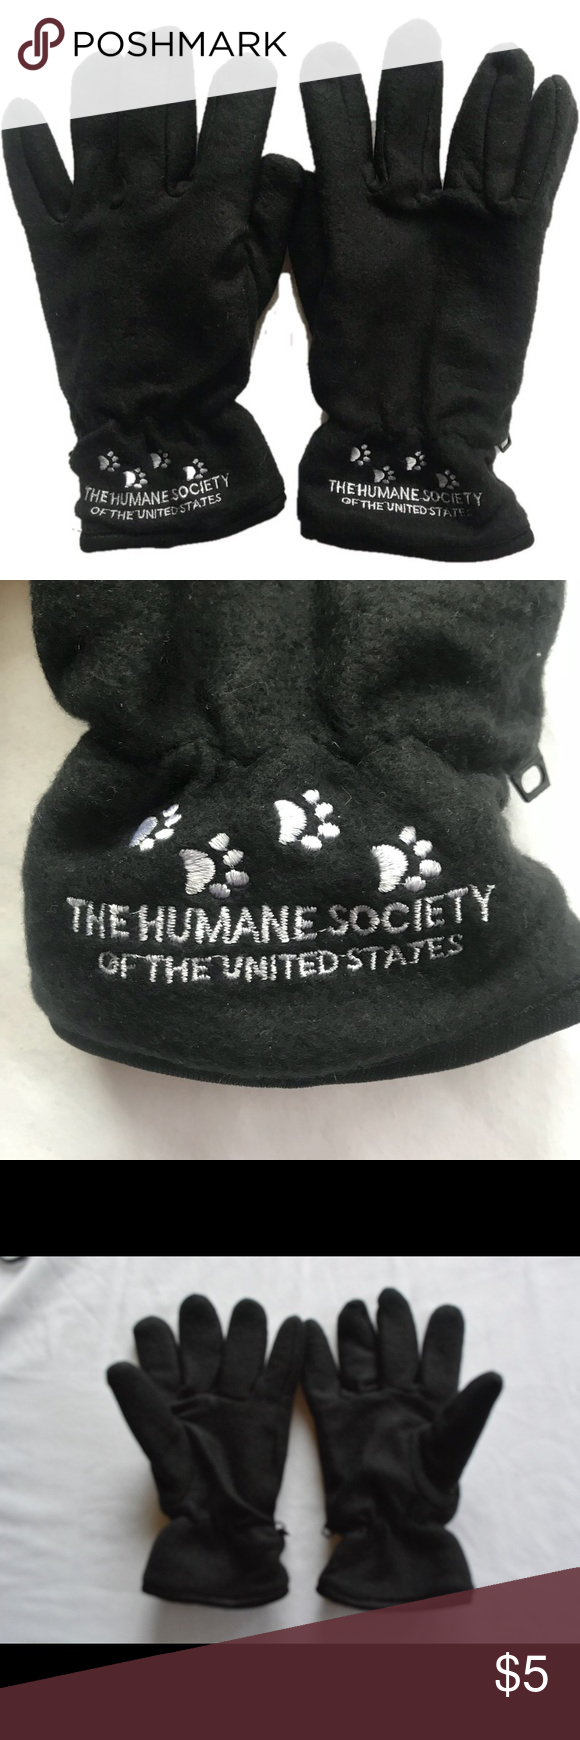 Black Winter Gloves With Humane Society Logo Gloves Winter